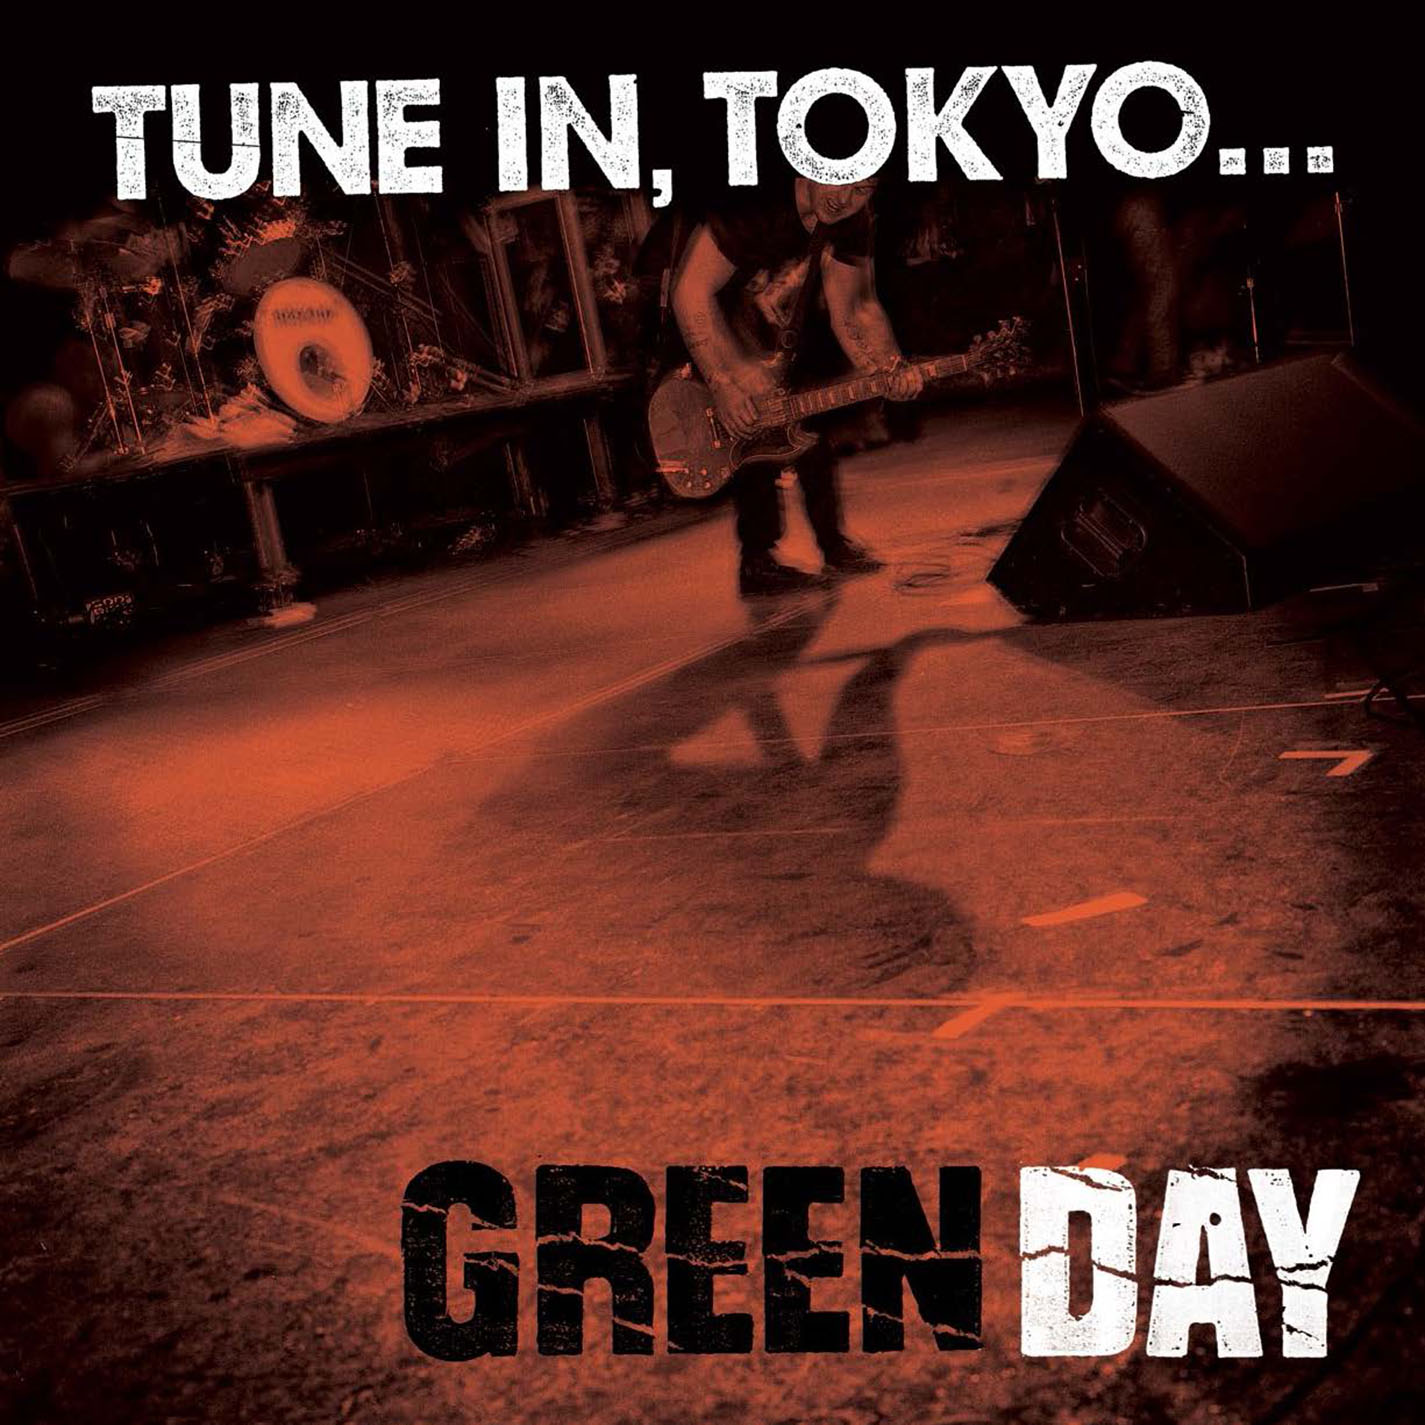 Green Day - Tune In, Tokyo